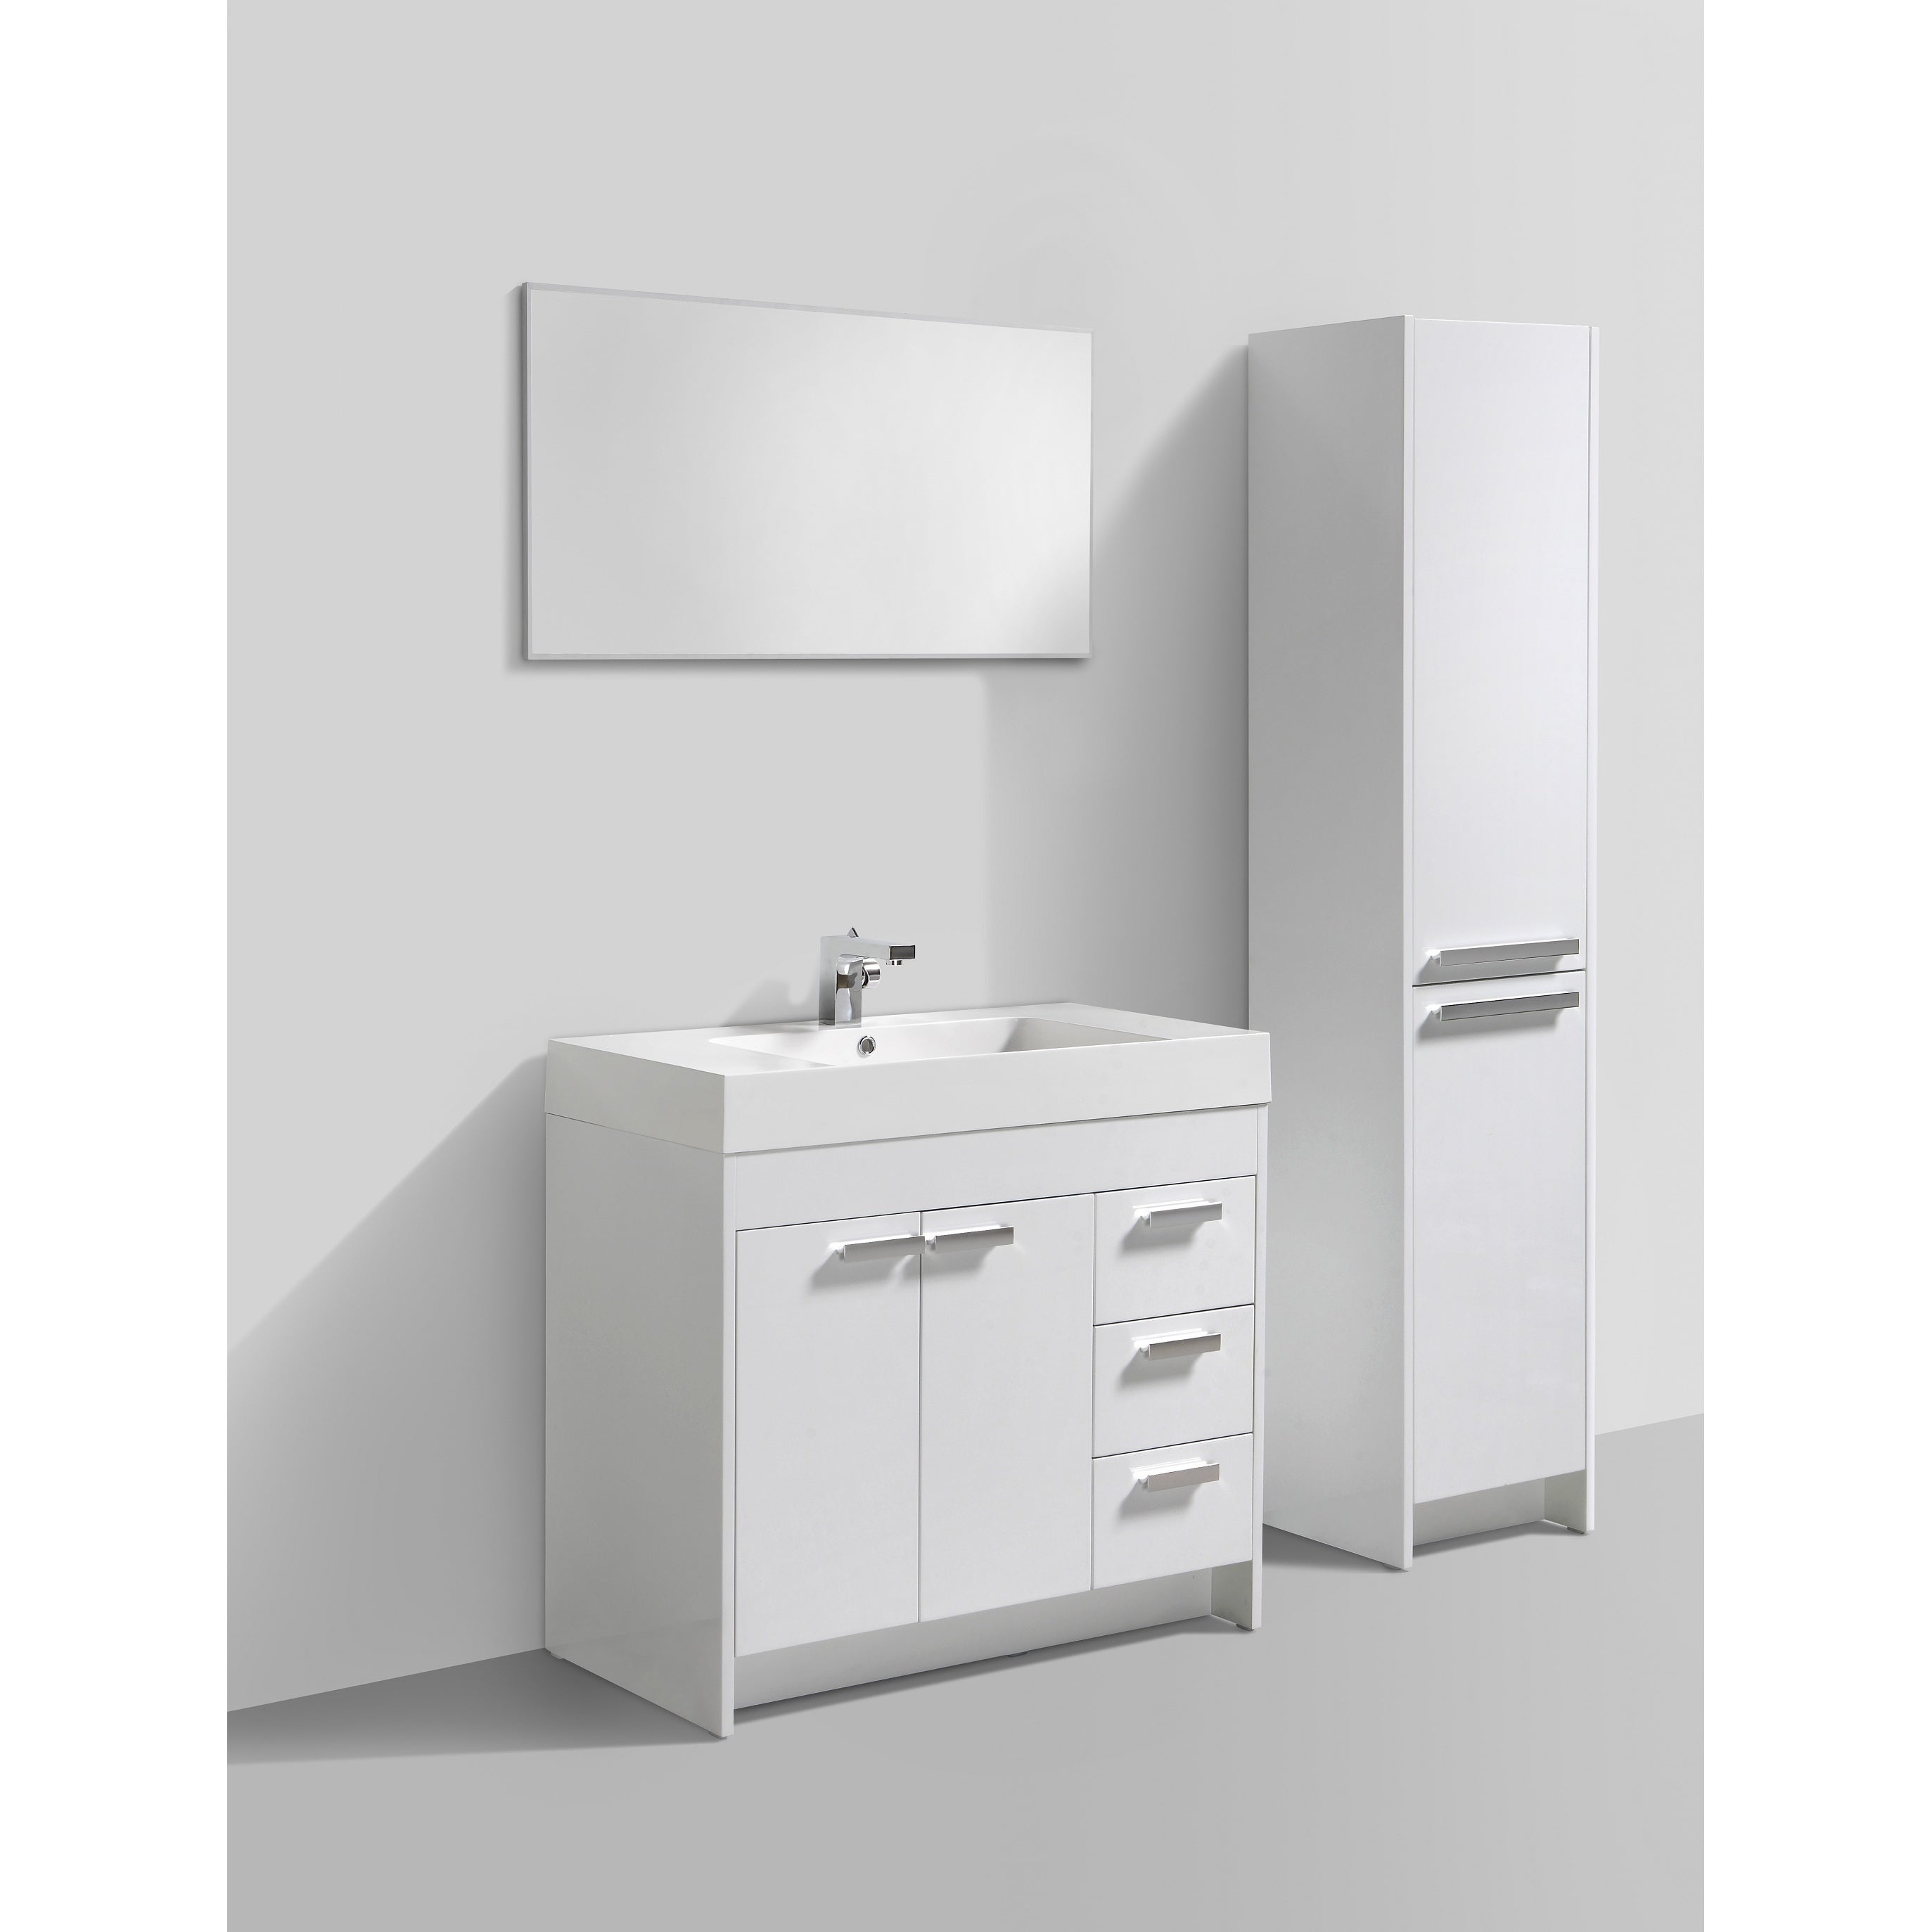 Shop Eviva Lugano 36 Inch White Modern Bathroom Vanity With White